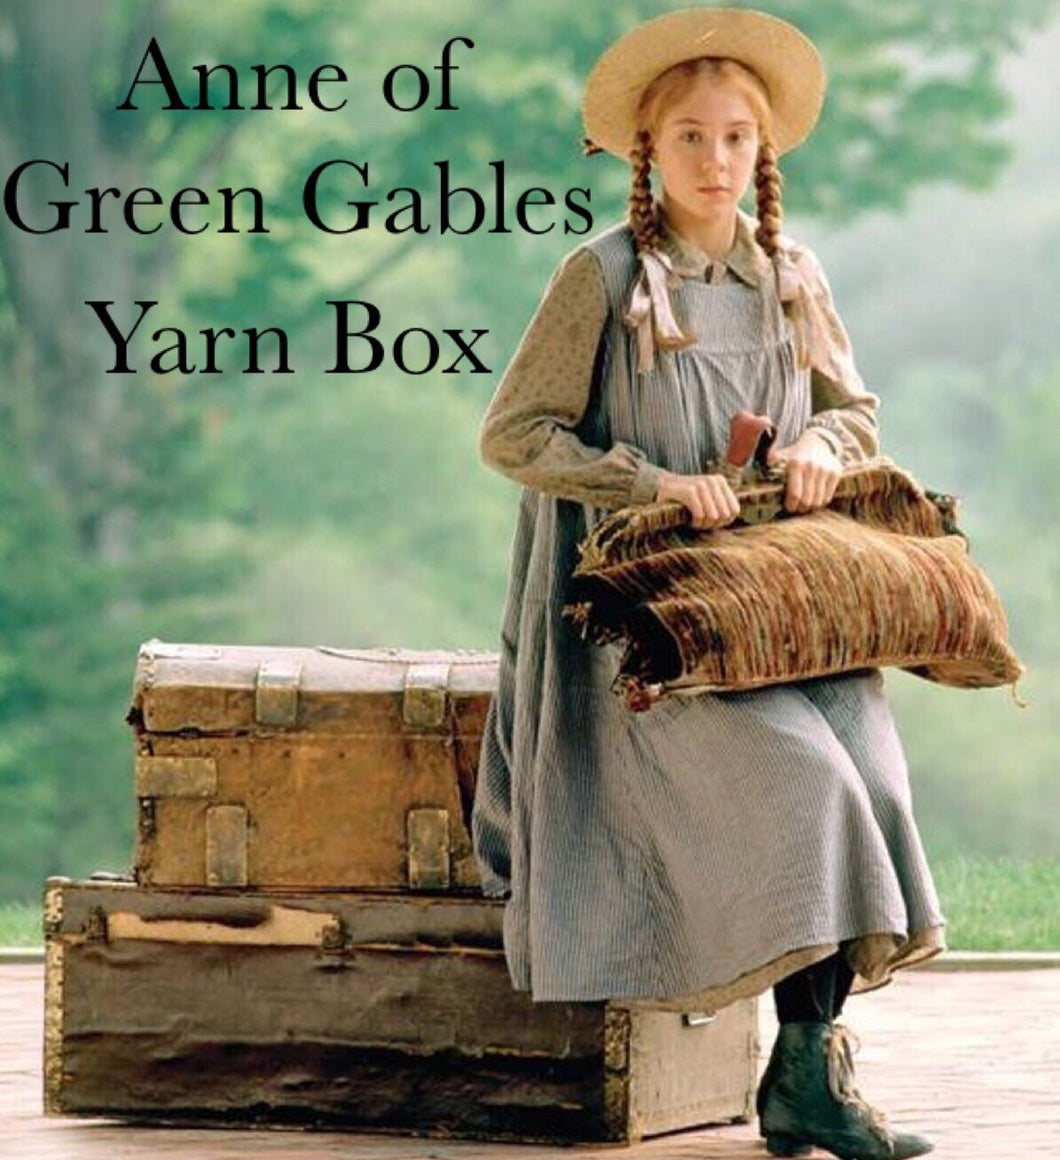 Anne of Green Gables Yarn Box